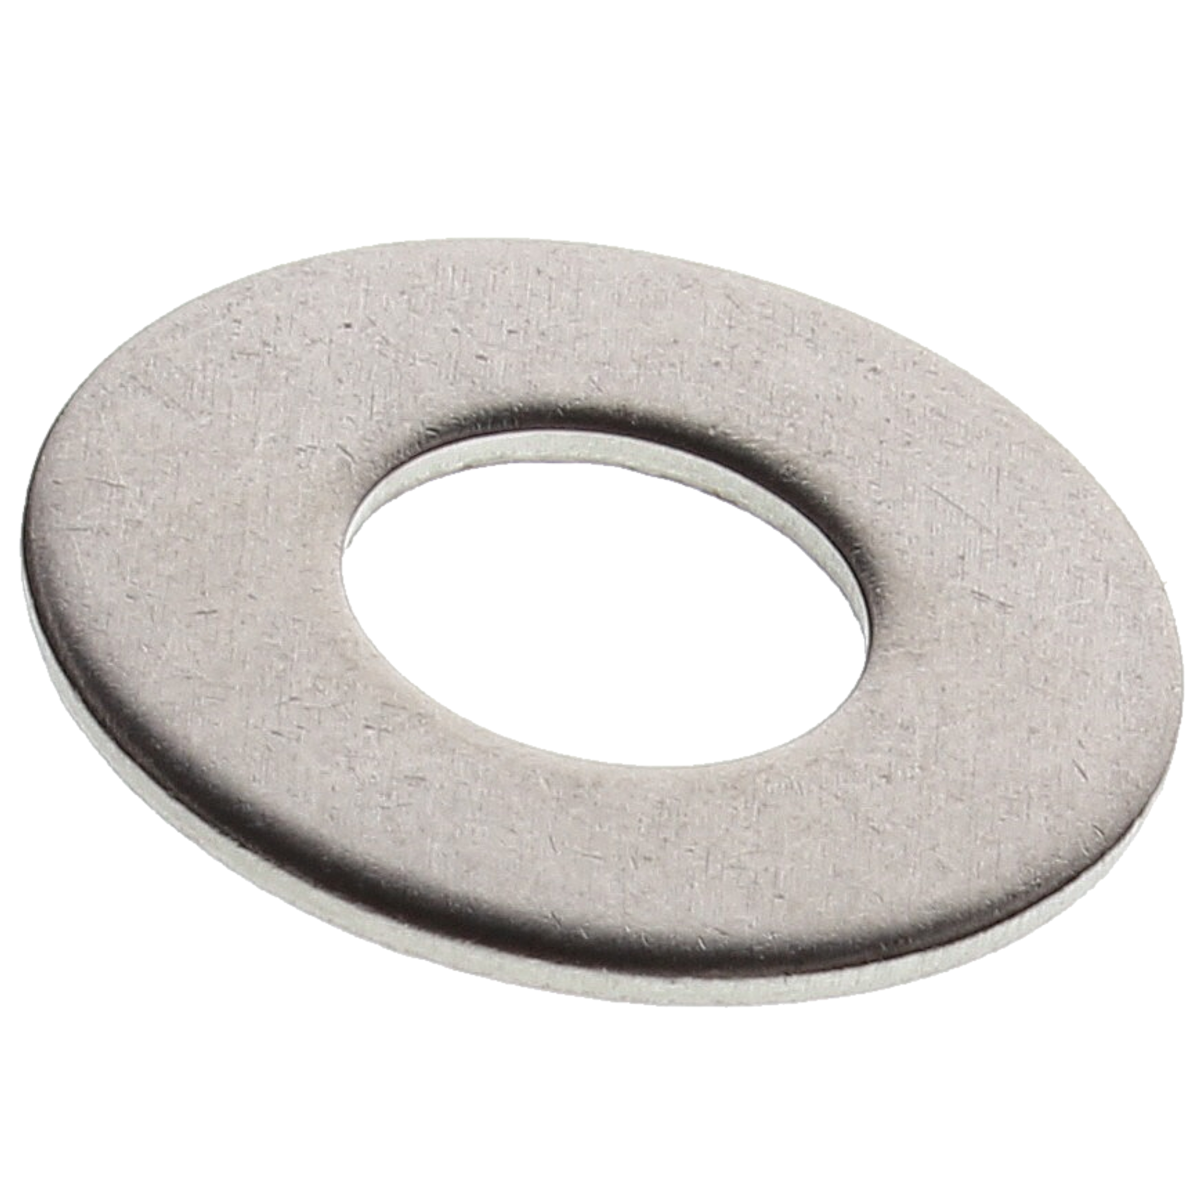 """#12 x 9/16"""" x .043 - .057 Flat Washers — 18-8 Stainless Steel, 100/PKG"""